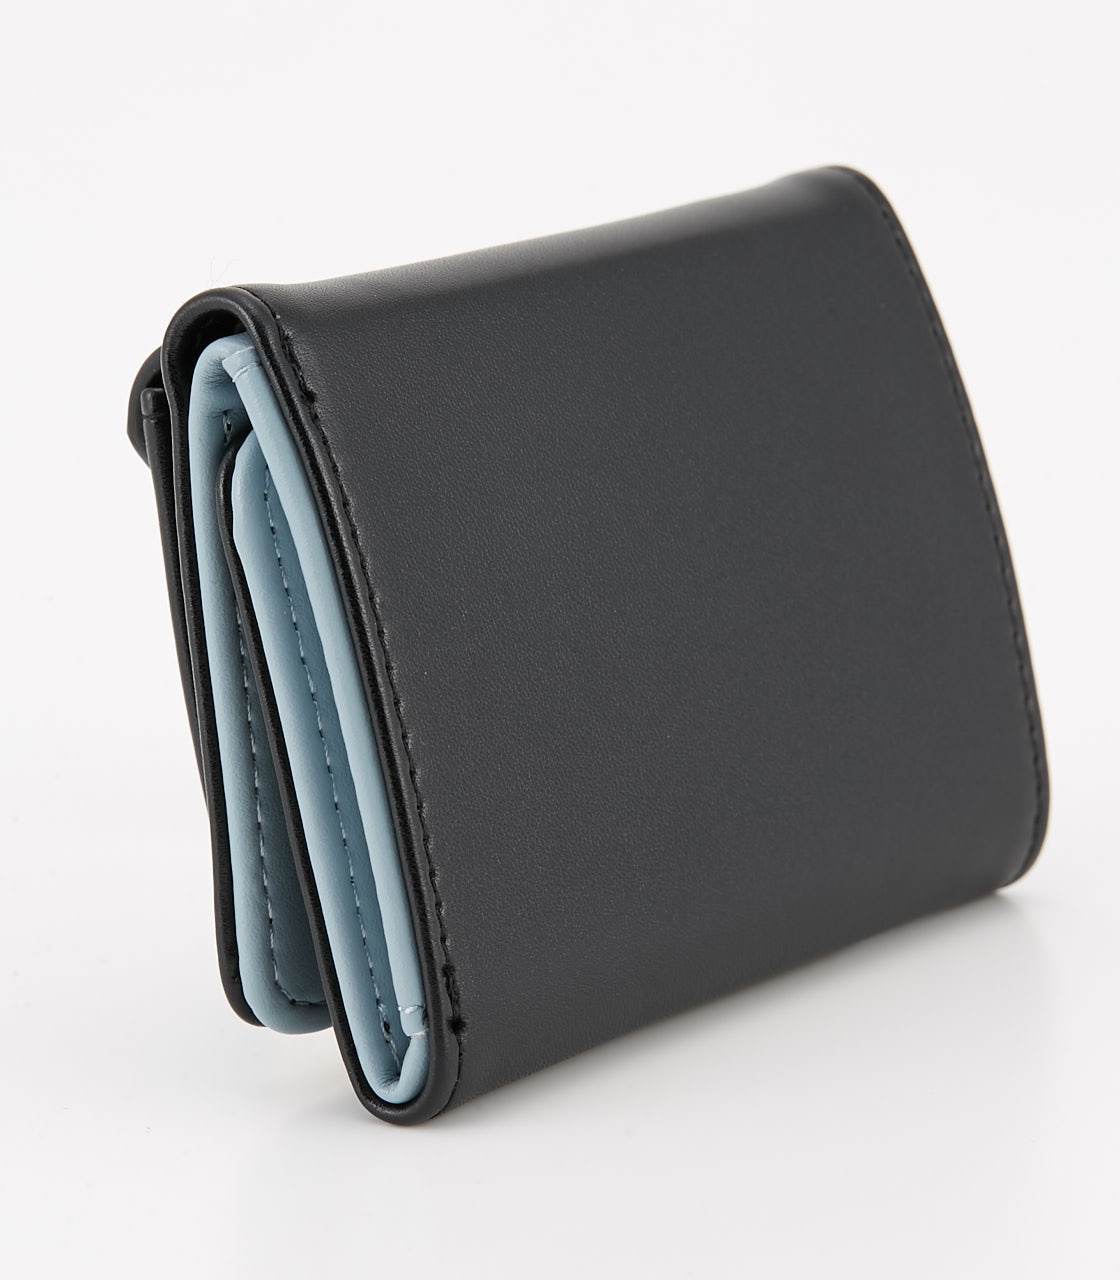 【AZUL BY MOUSSY】COLOR POINT COMPACT WALLET 詳細画像 BLK 2